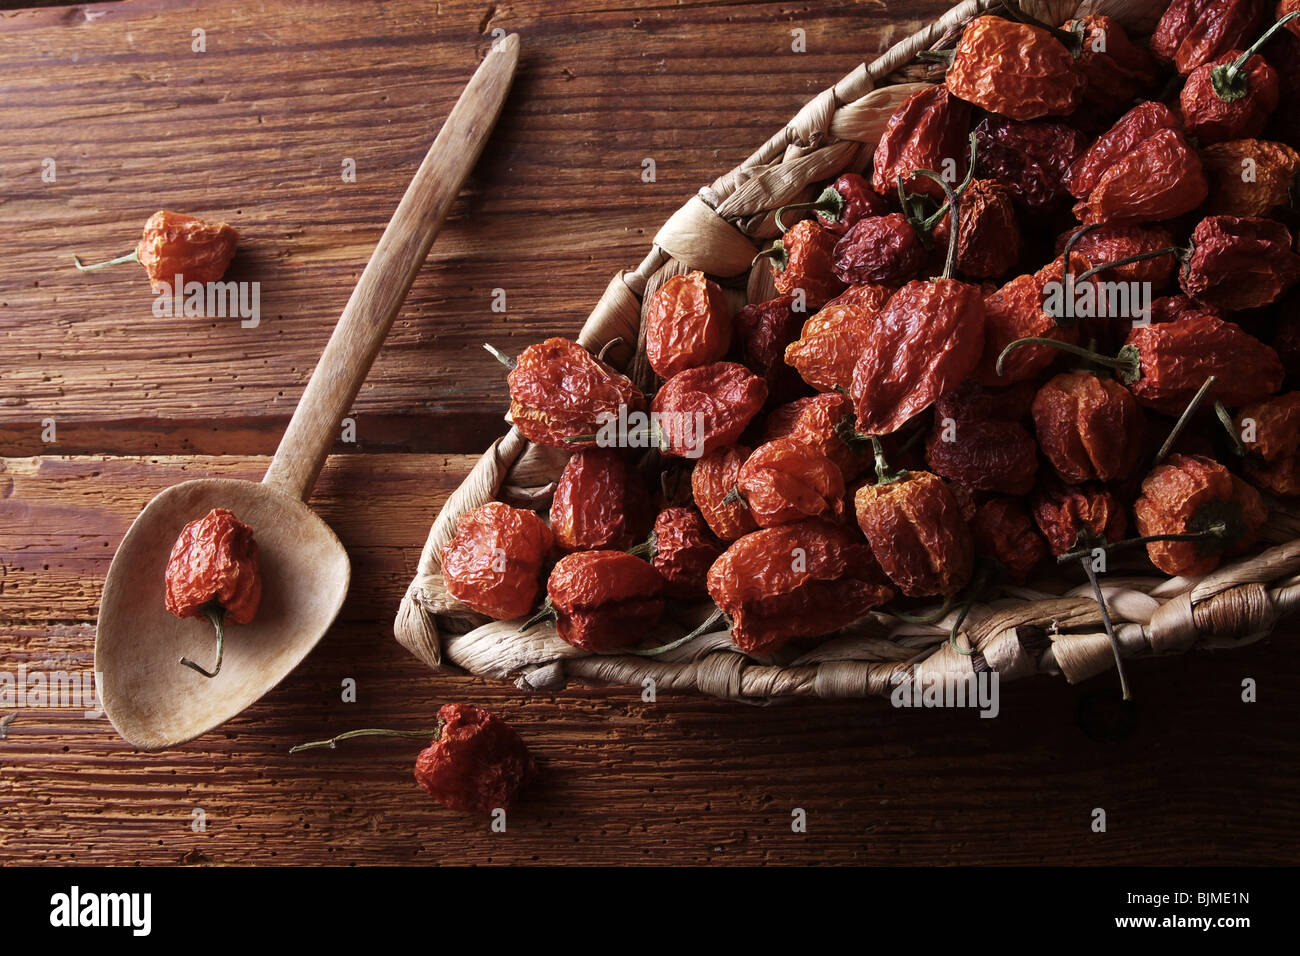 Mini-Peppers (capsicum) in a wicker basket on a rustic wooden background - Stock Image